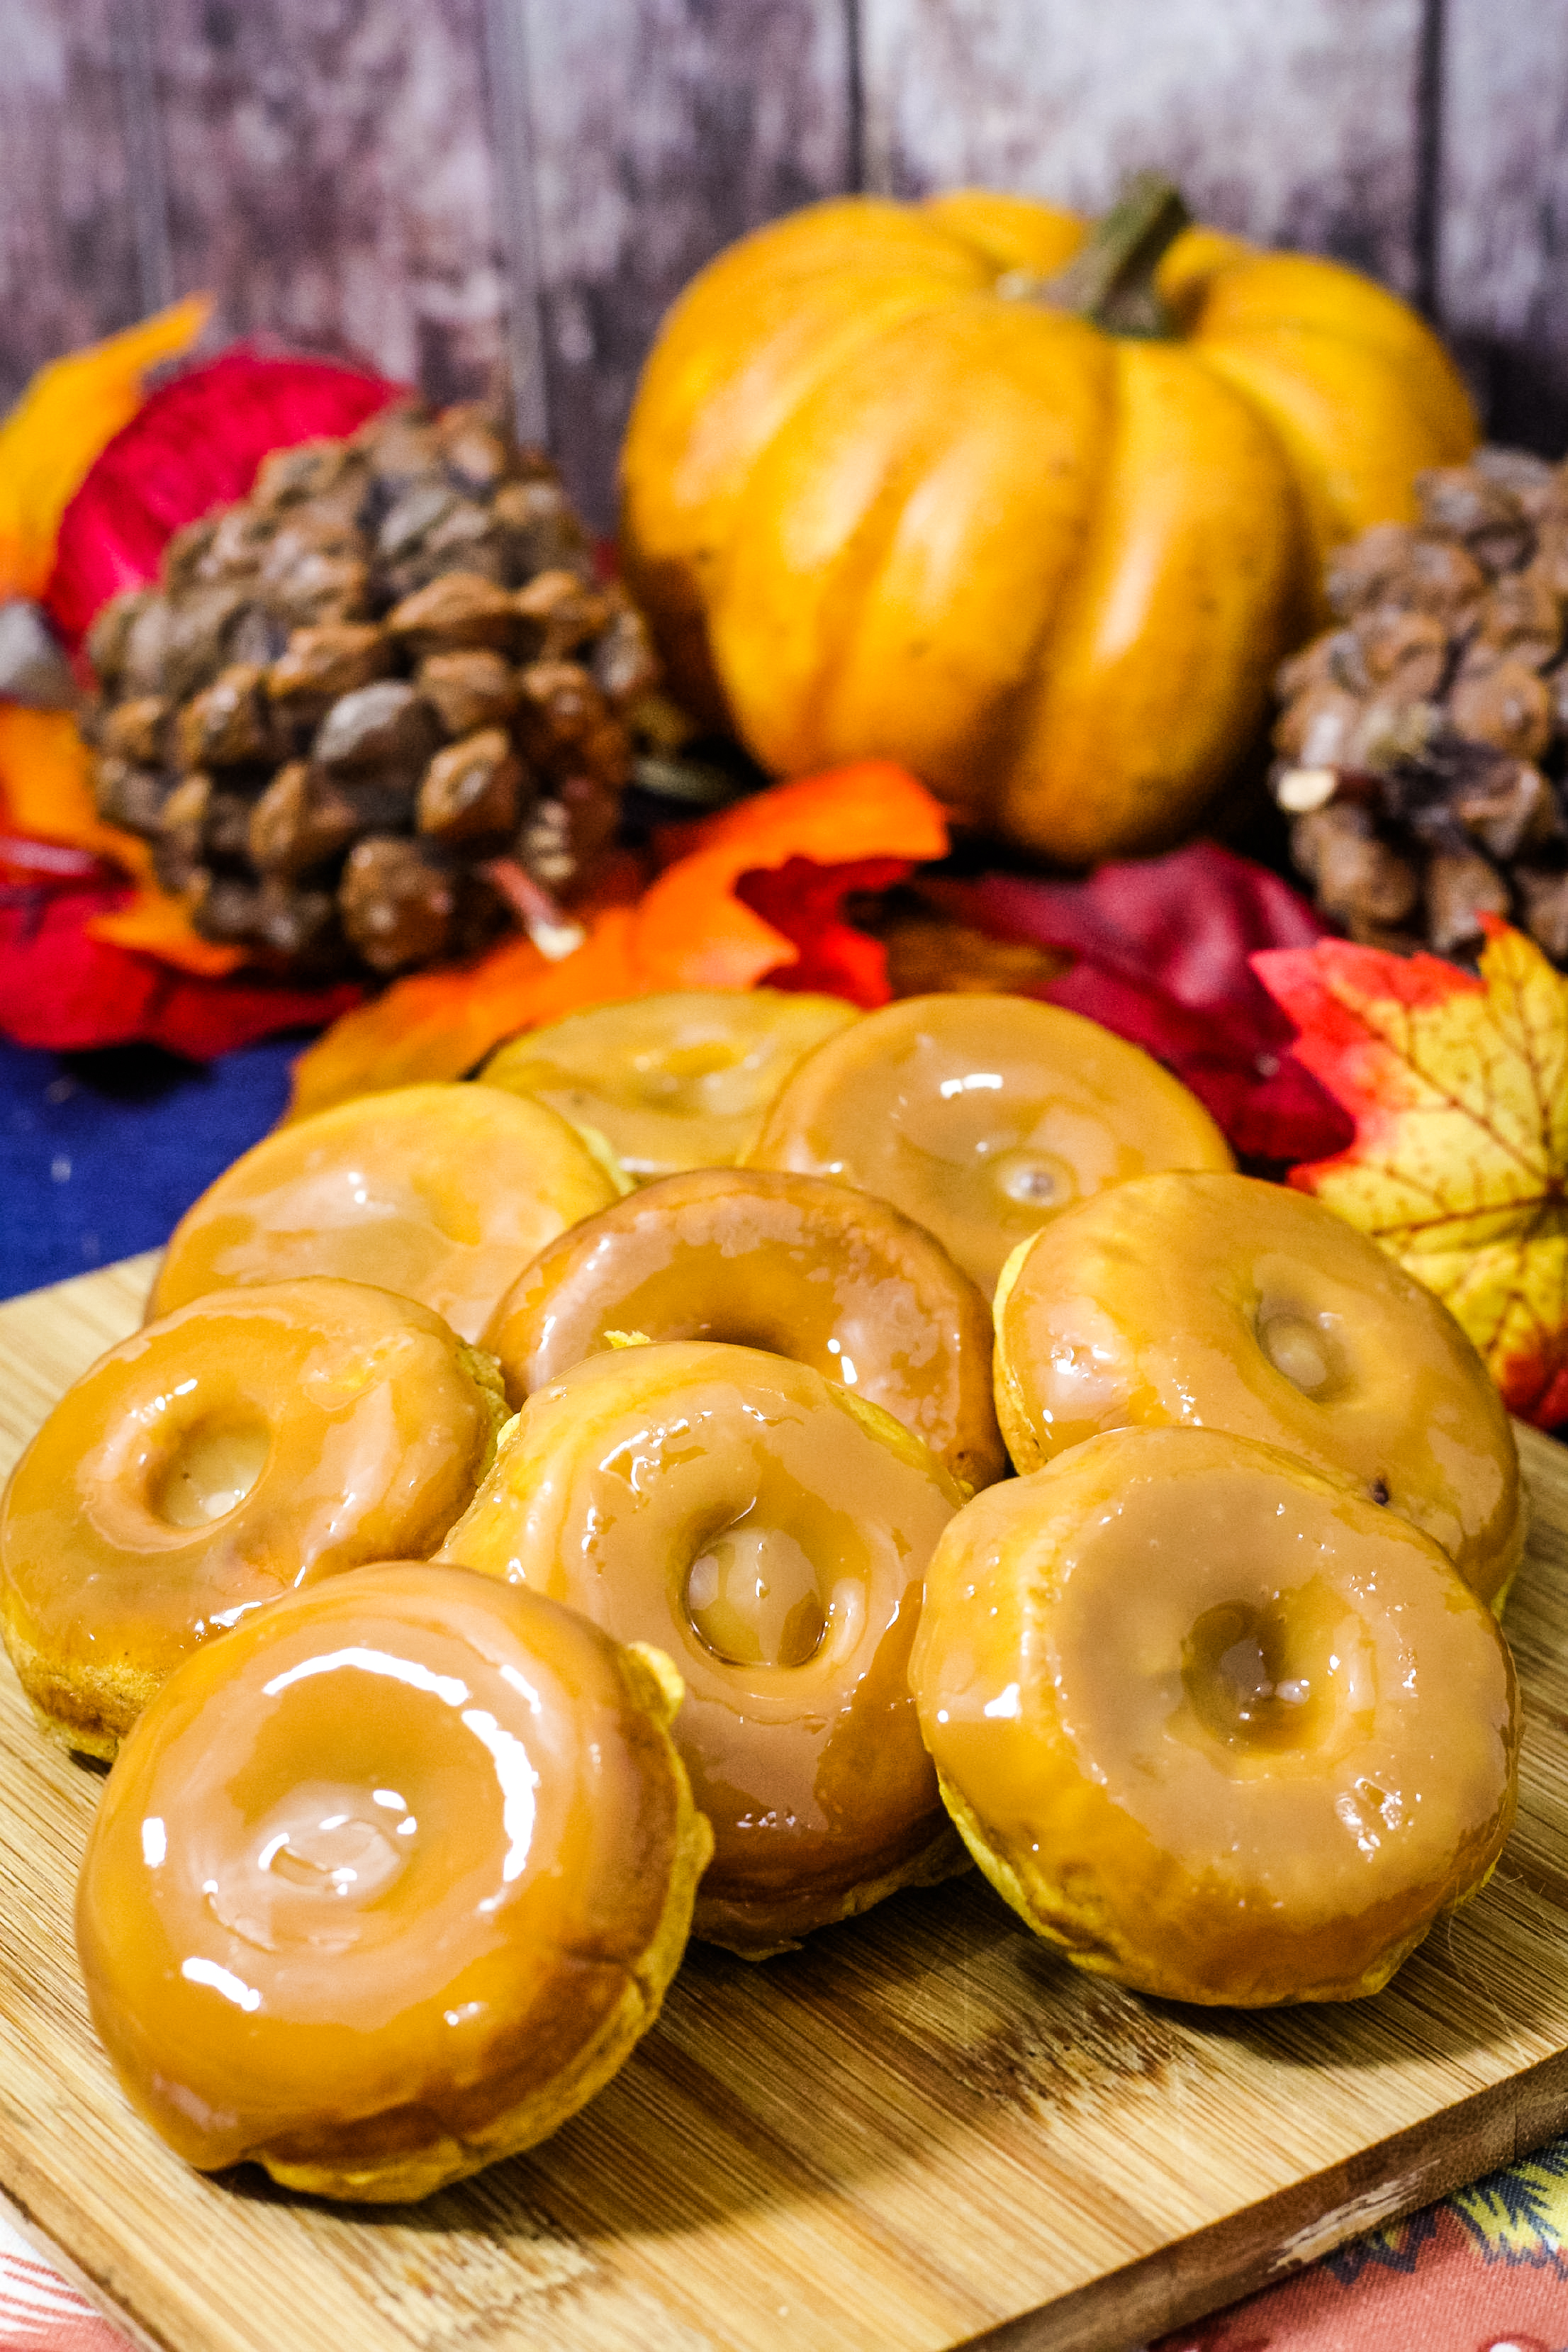 Looking for a delicious pumpkin donut recipe? These baked mini donuts are the perfect sized pumpkin treat. Filled with pumpkin spice flavor, these donuts are glazed to perfection. #pumpkin #treat #breakfast #donuts